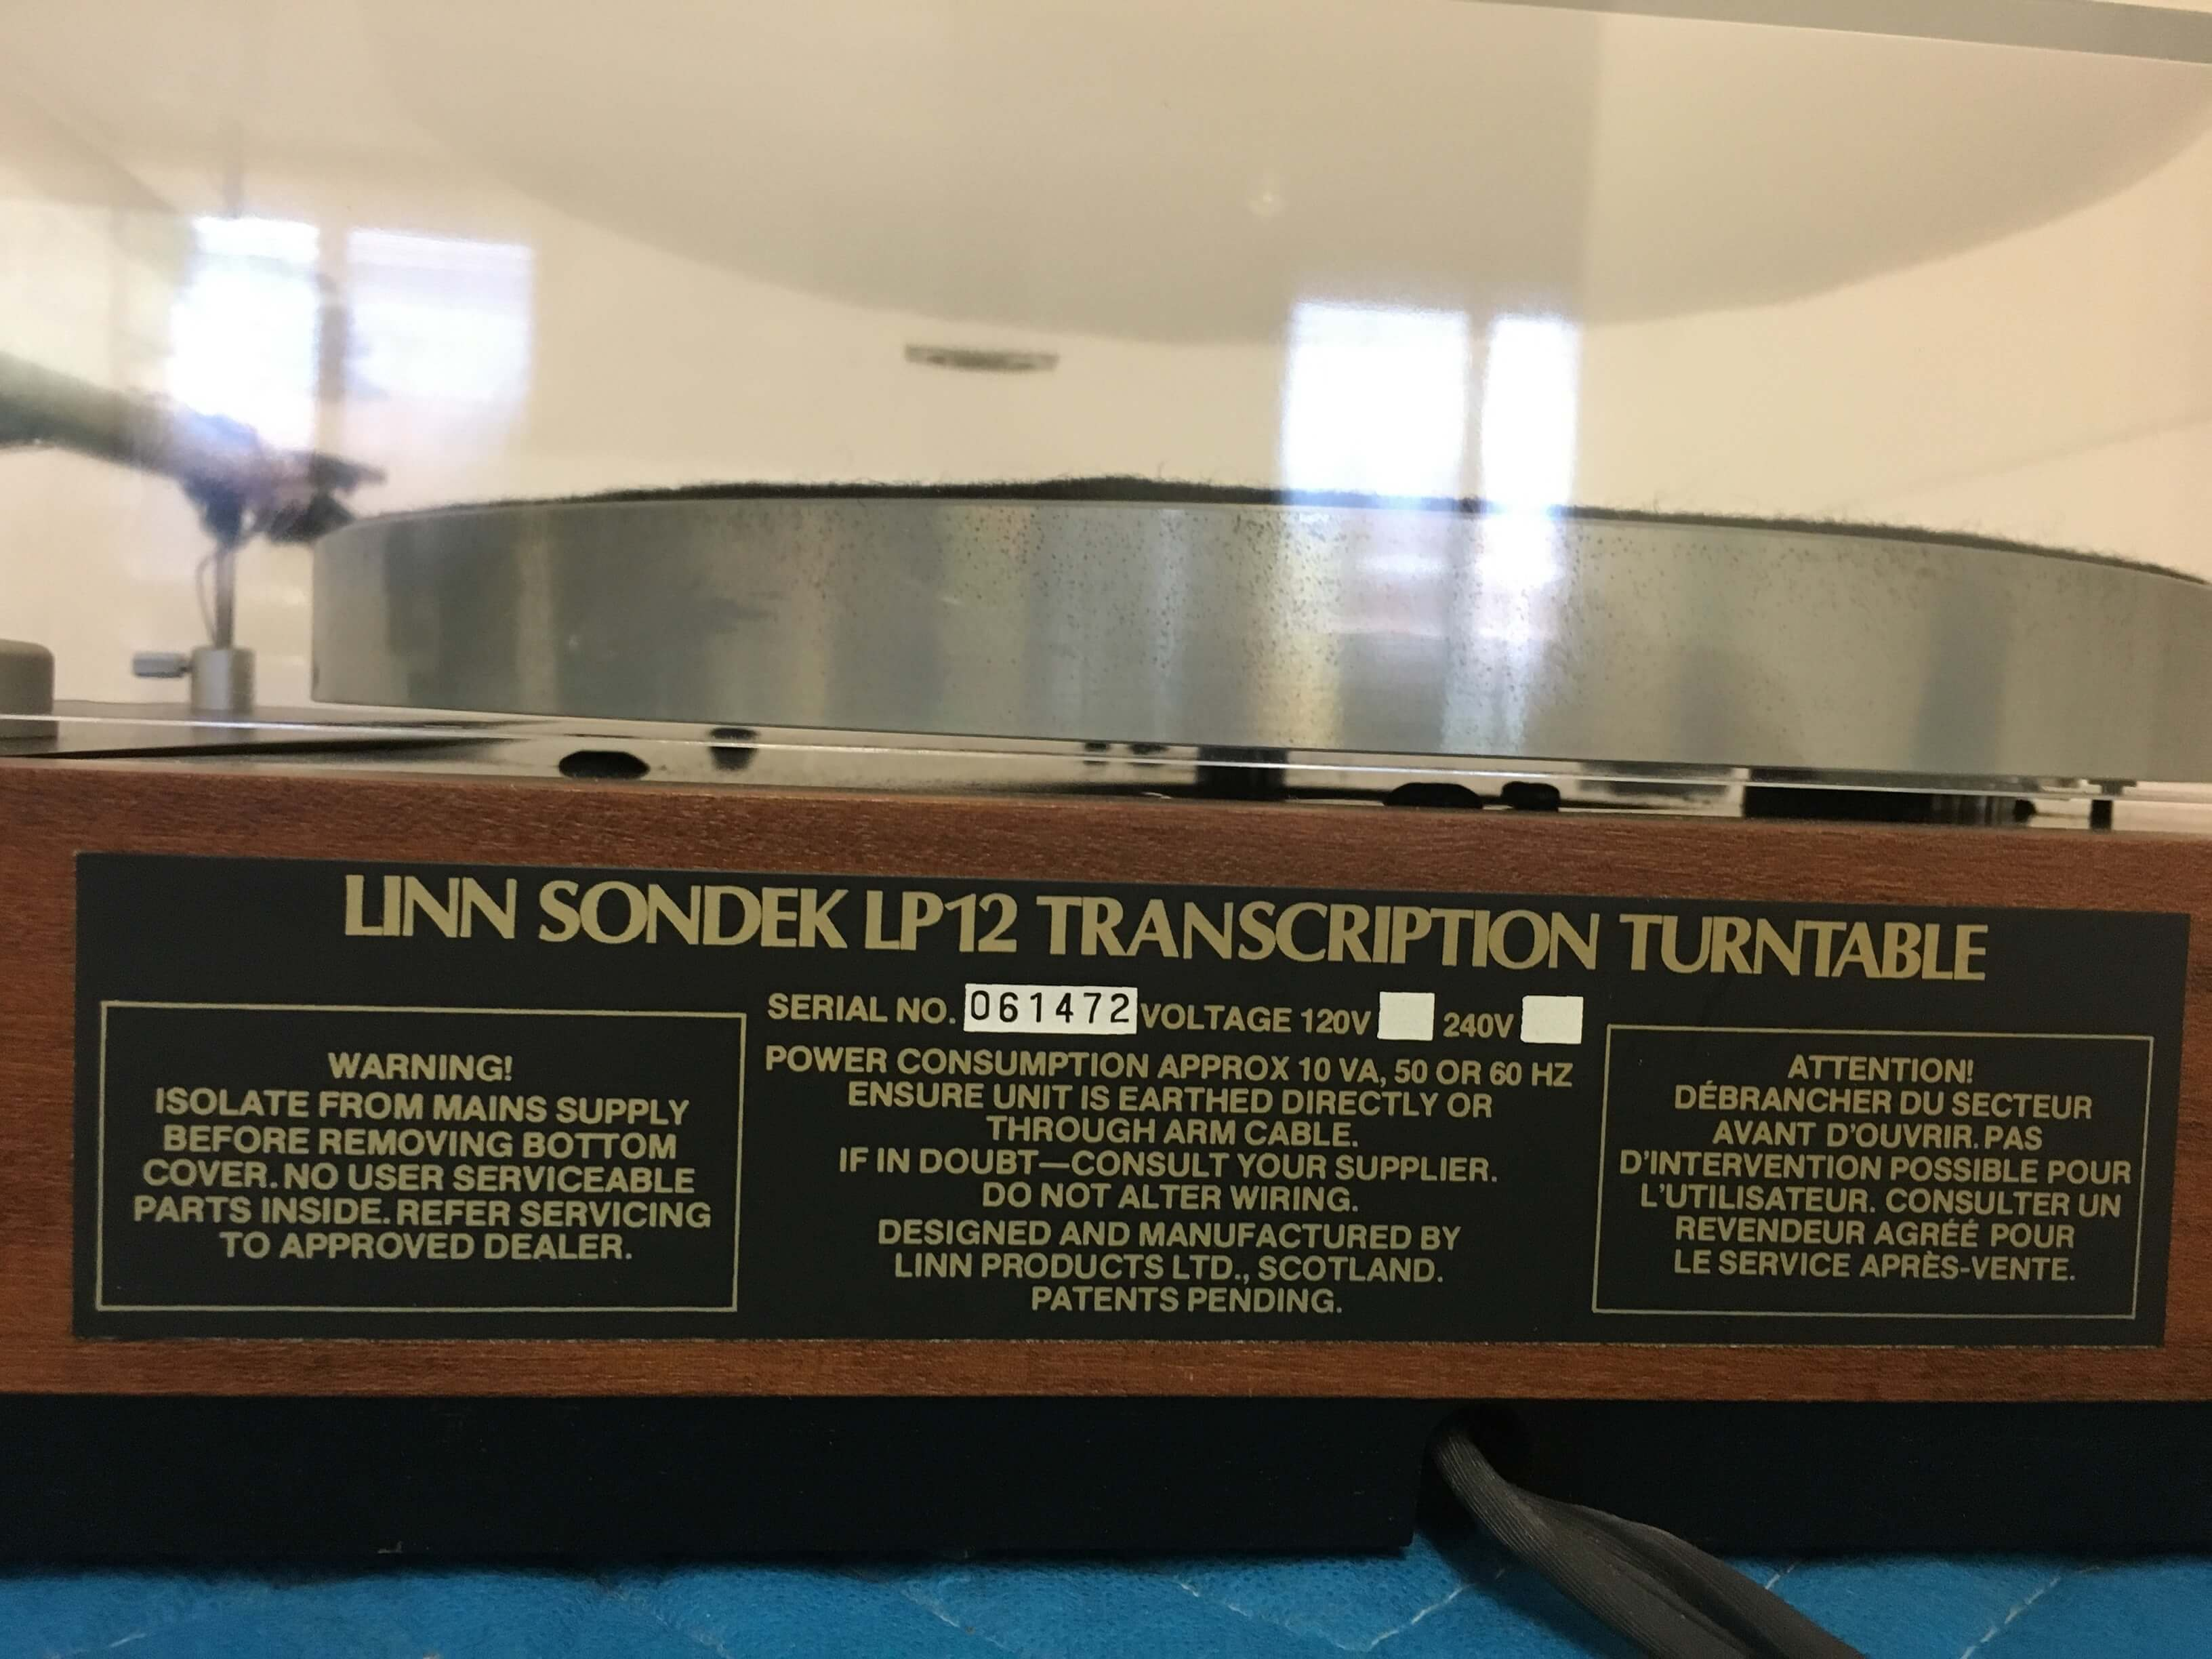 Linn Sondek LP12 transcription turntable